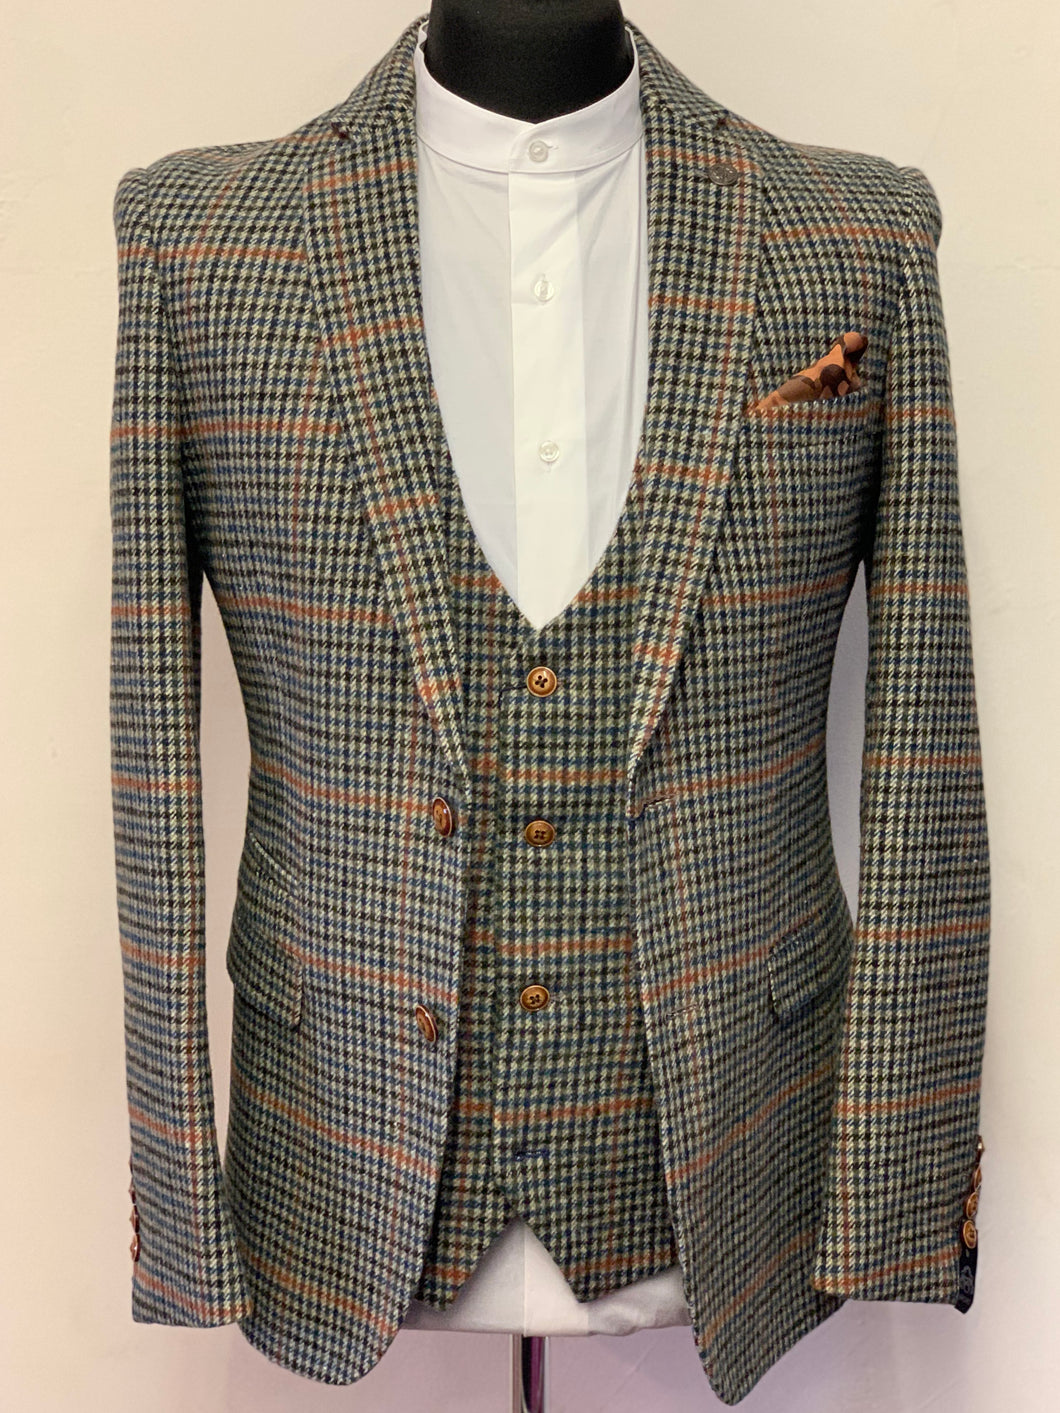 Marc Darcy Eddie Teal Tweed Jacket